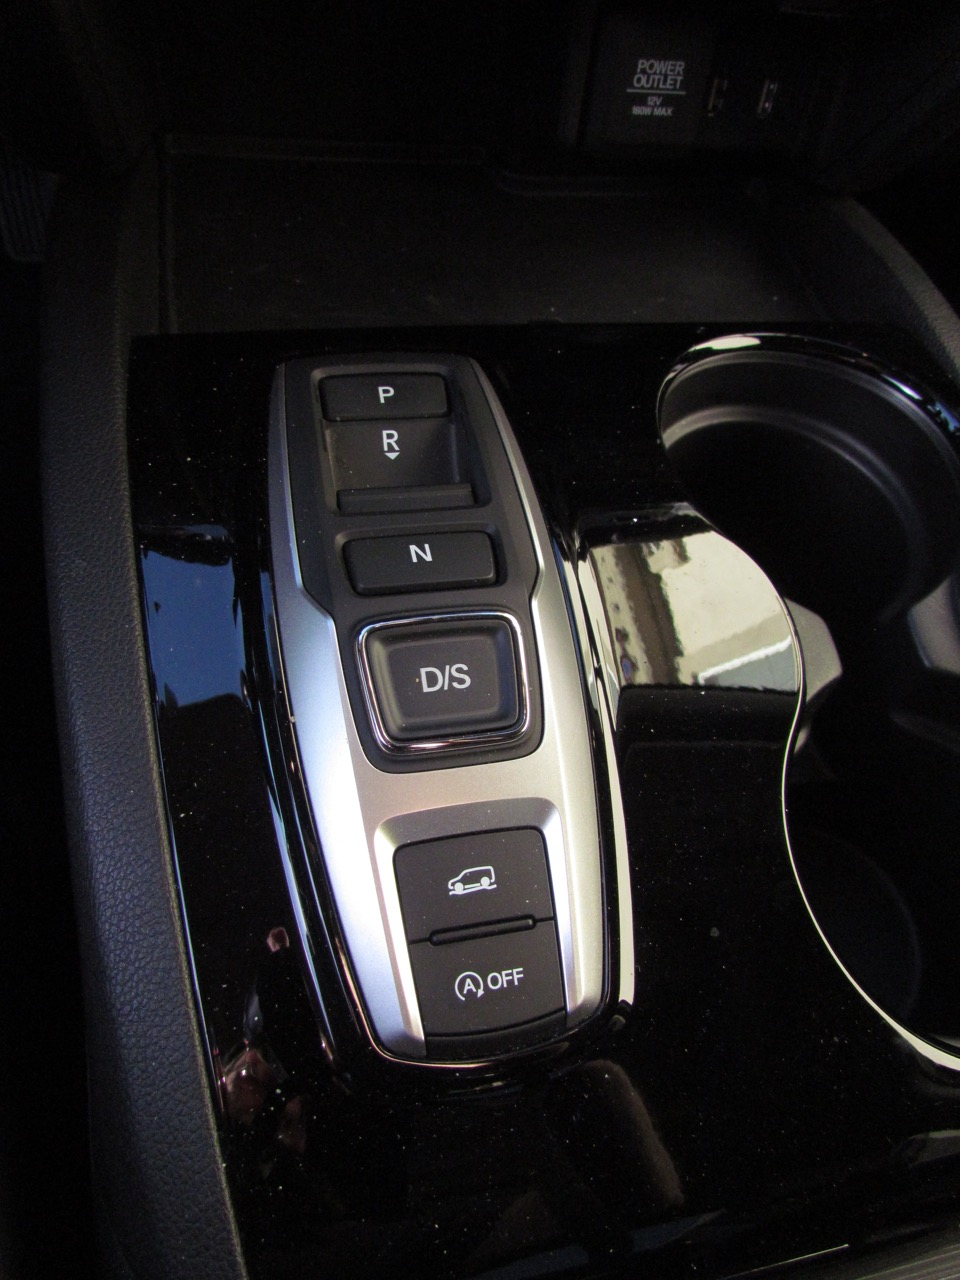 Another unusual Honda gear-shifting system